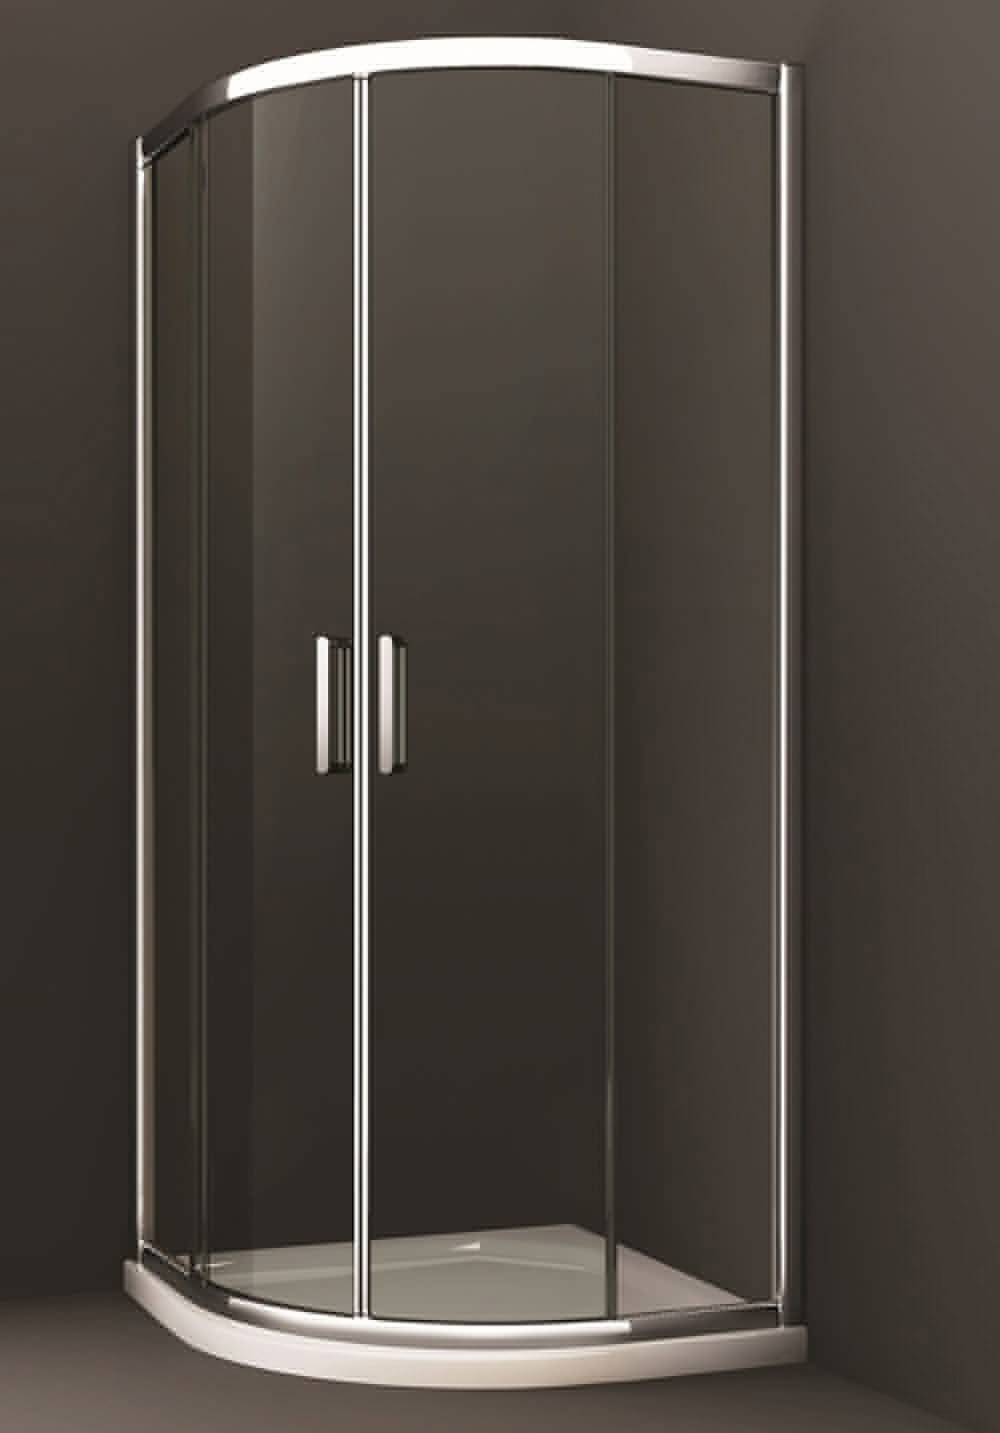 Merlyn 8 series 800 x 800mm 2 door quadrant shower enclosure for Door quadrant